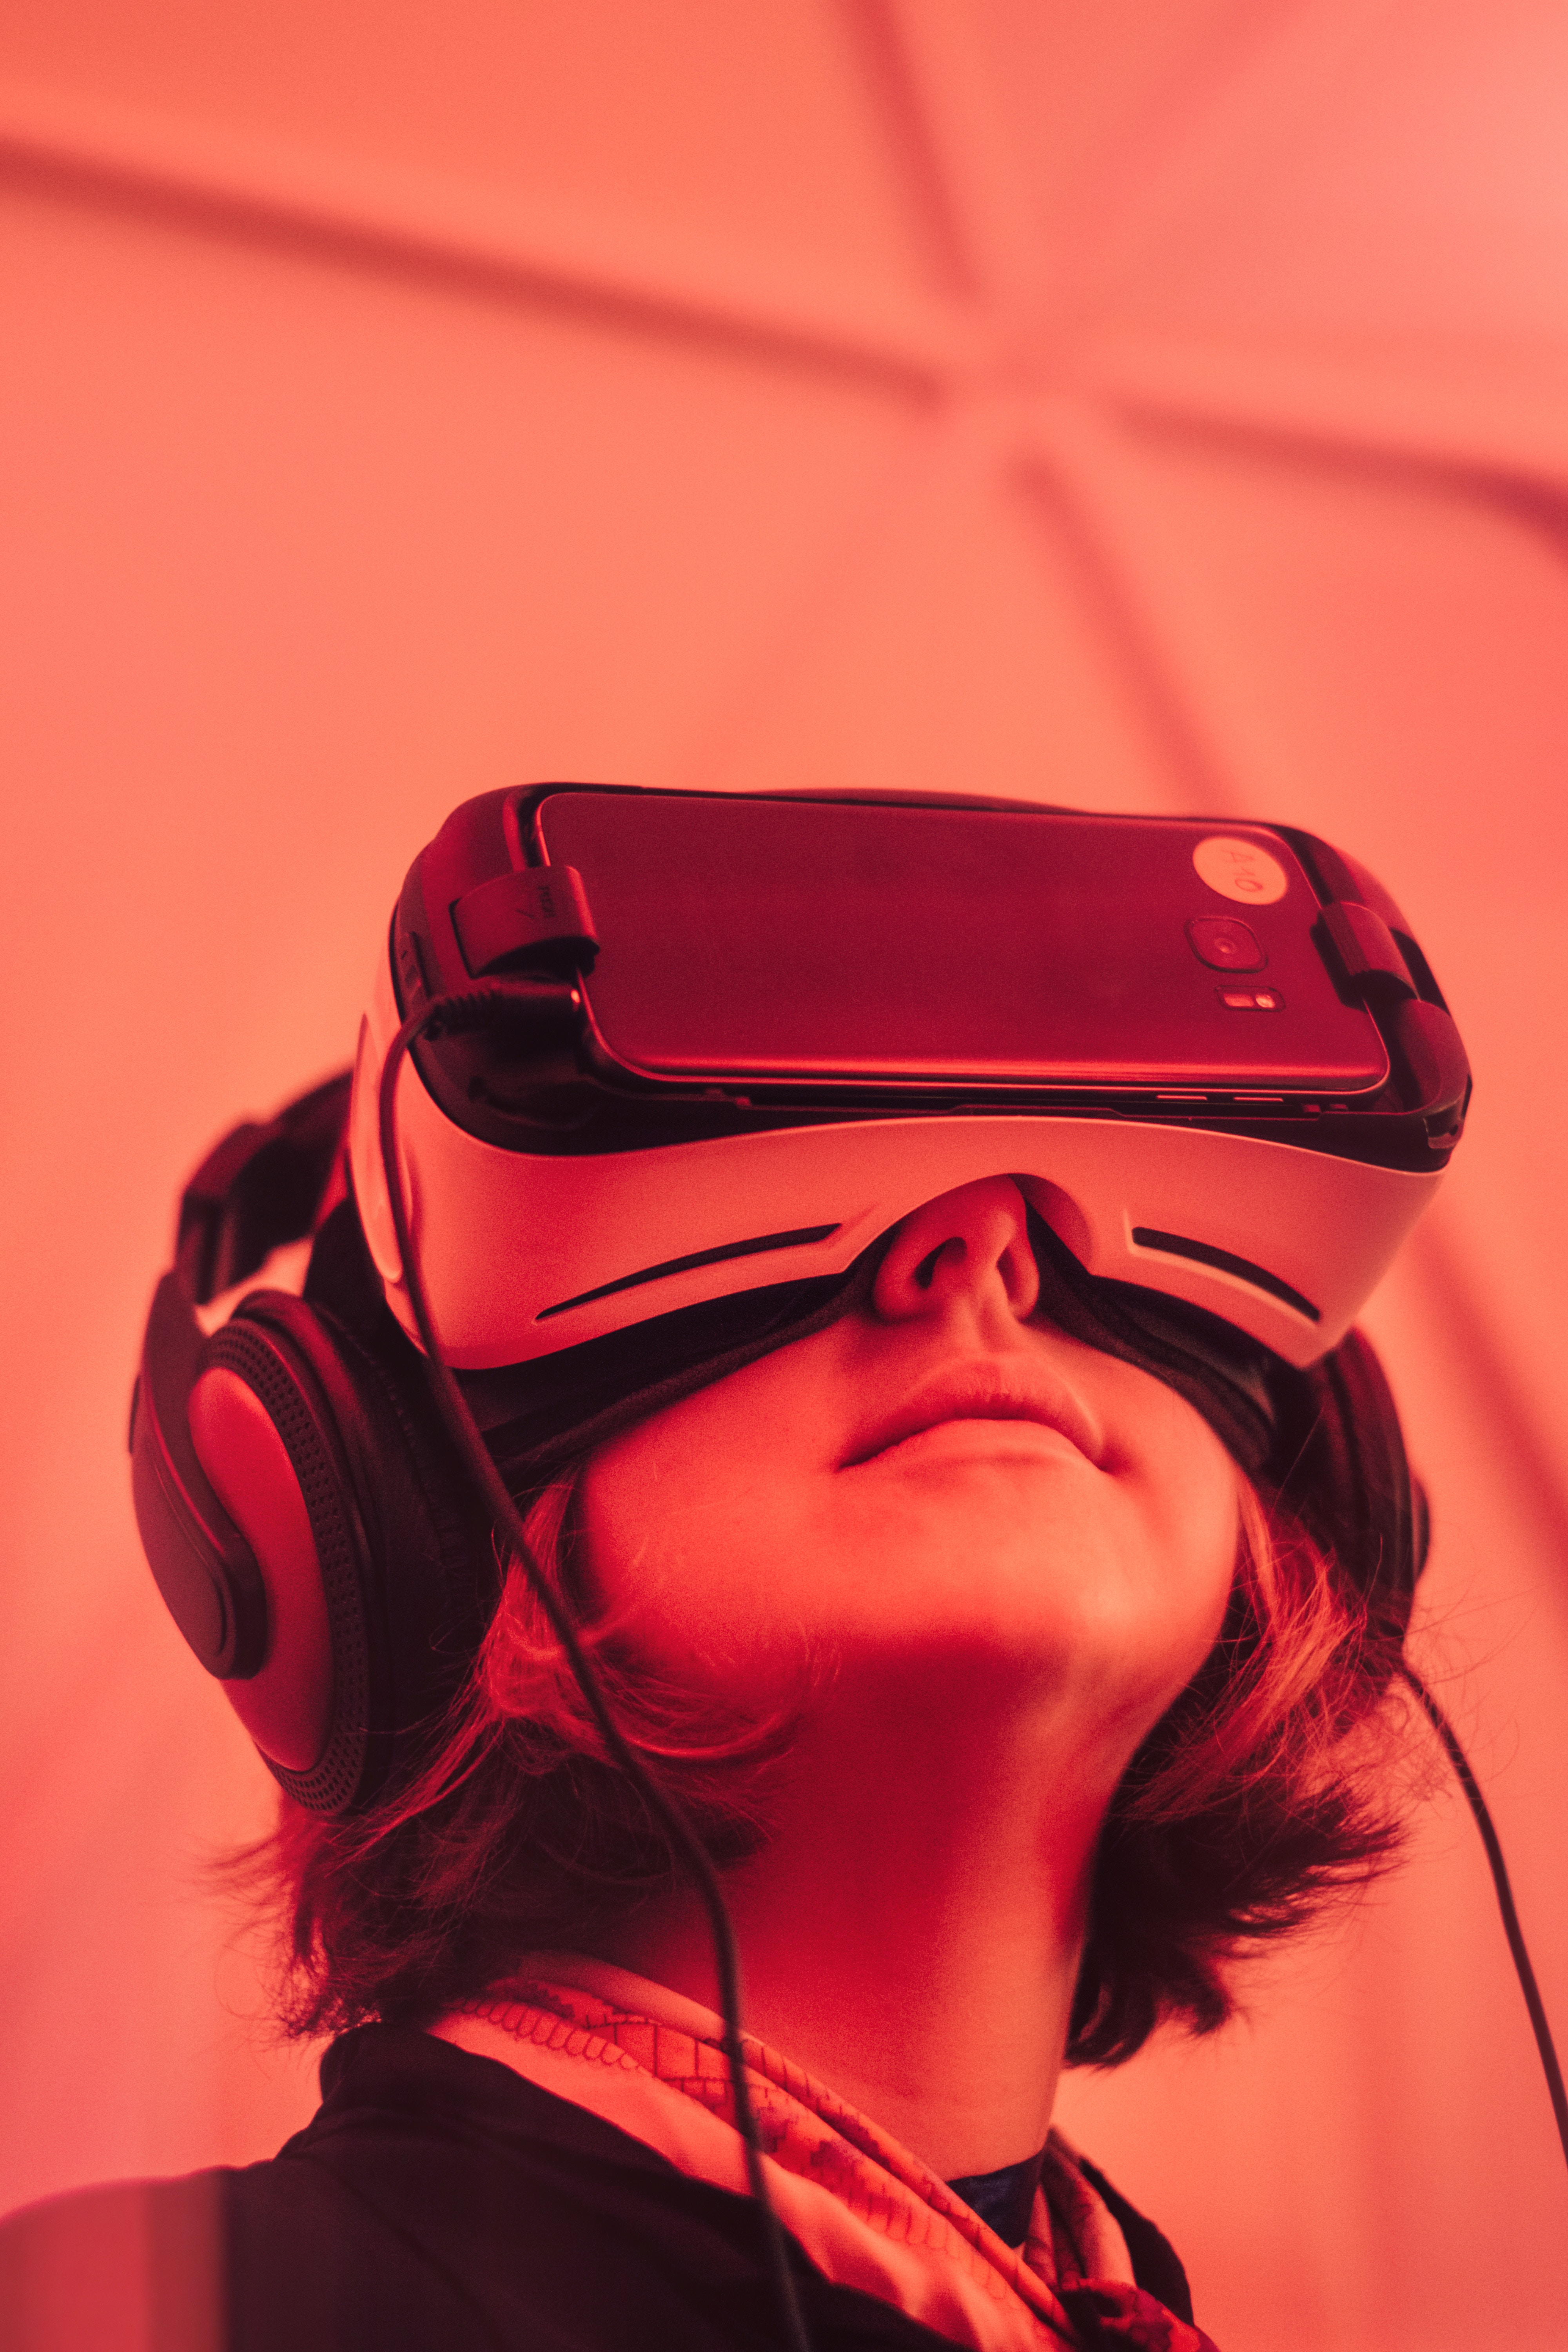 0e4469af9f4 Every teacher I know has virtual reality on their radar. It s one of those  short-listed disruptive technologies that kids want to be involved in and  will ...